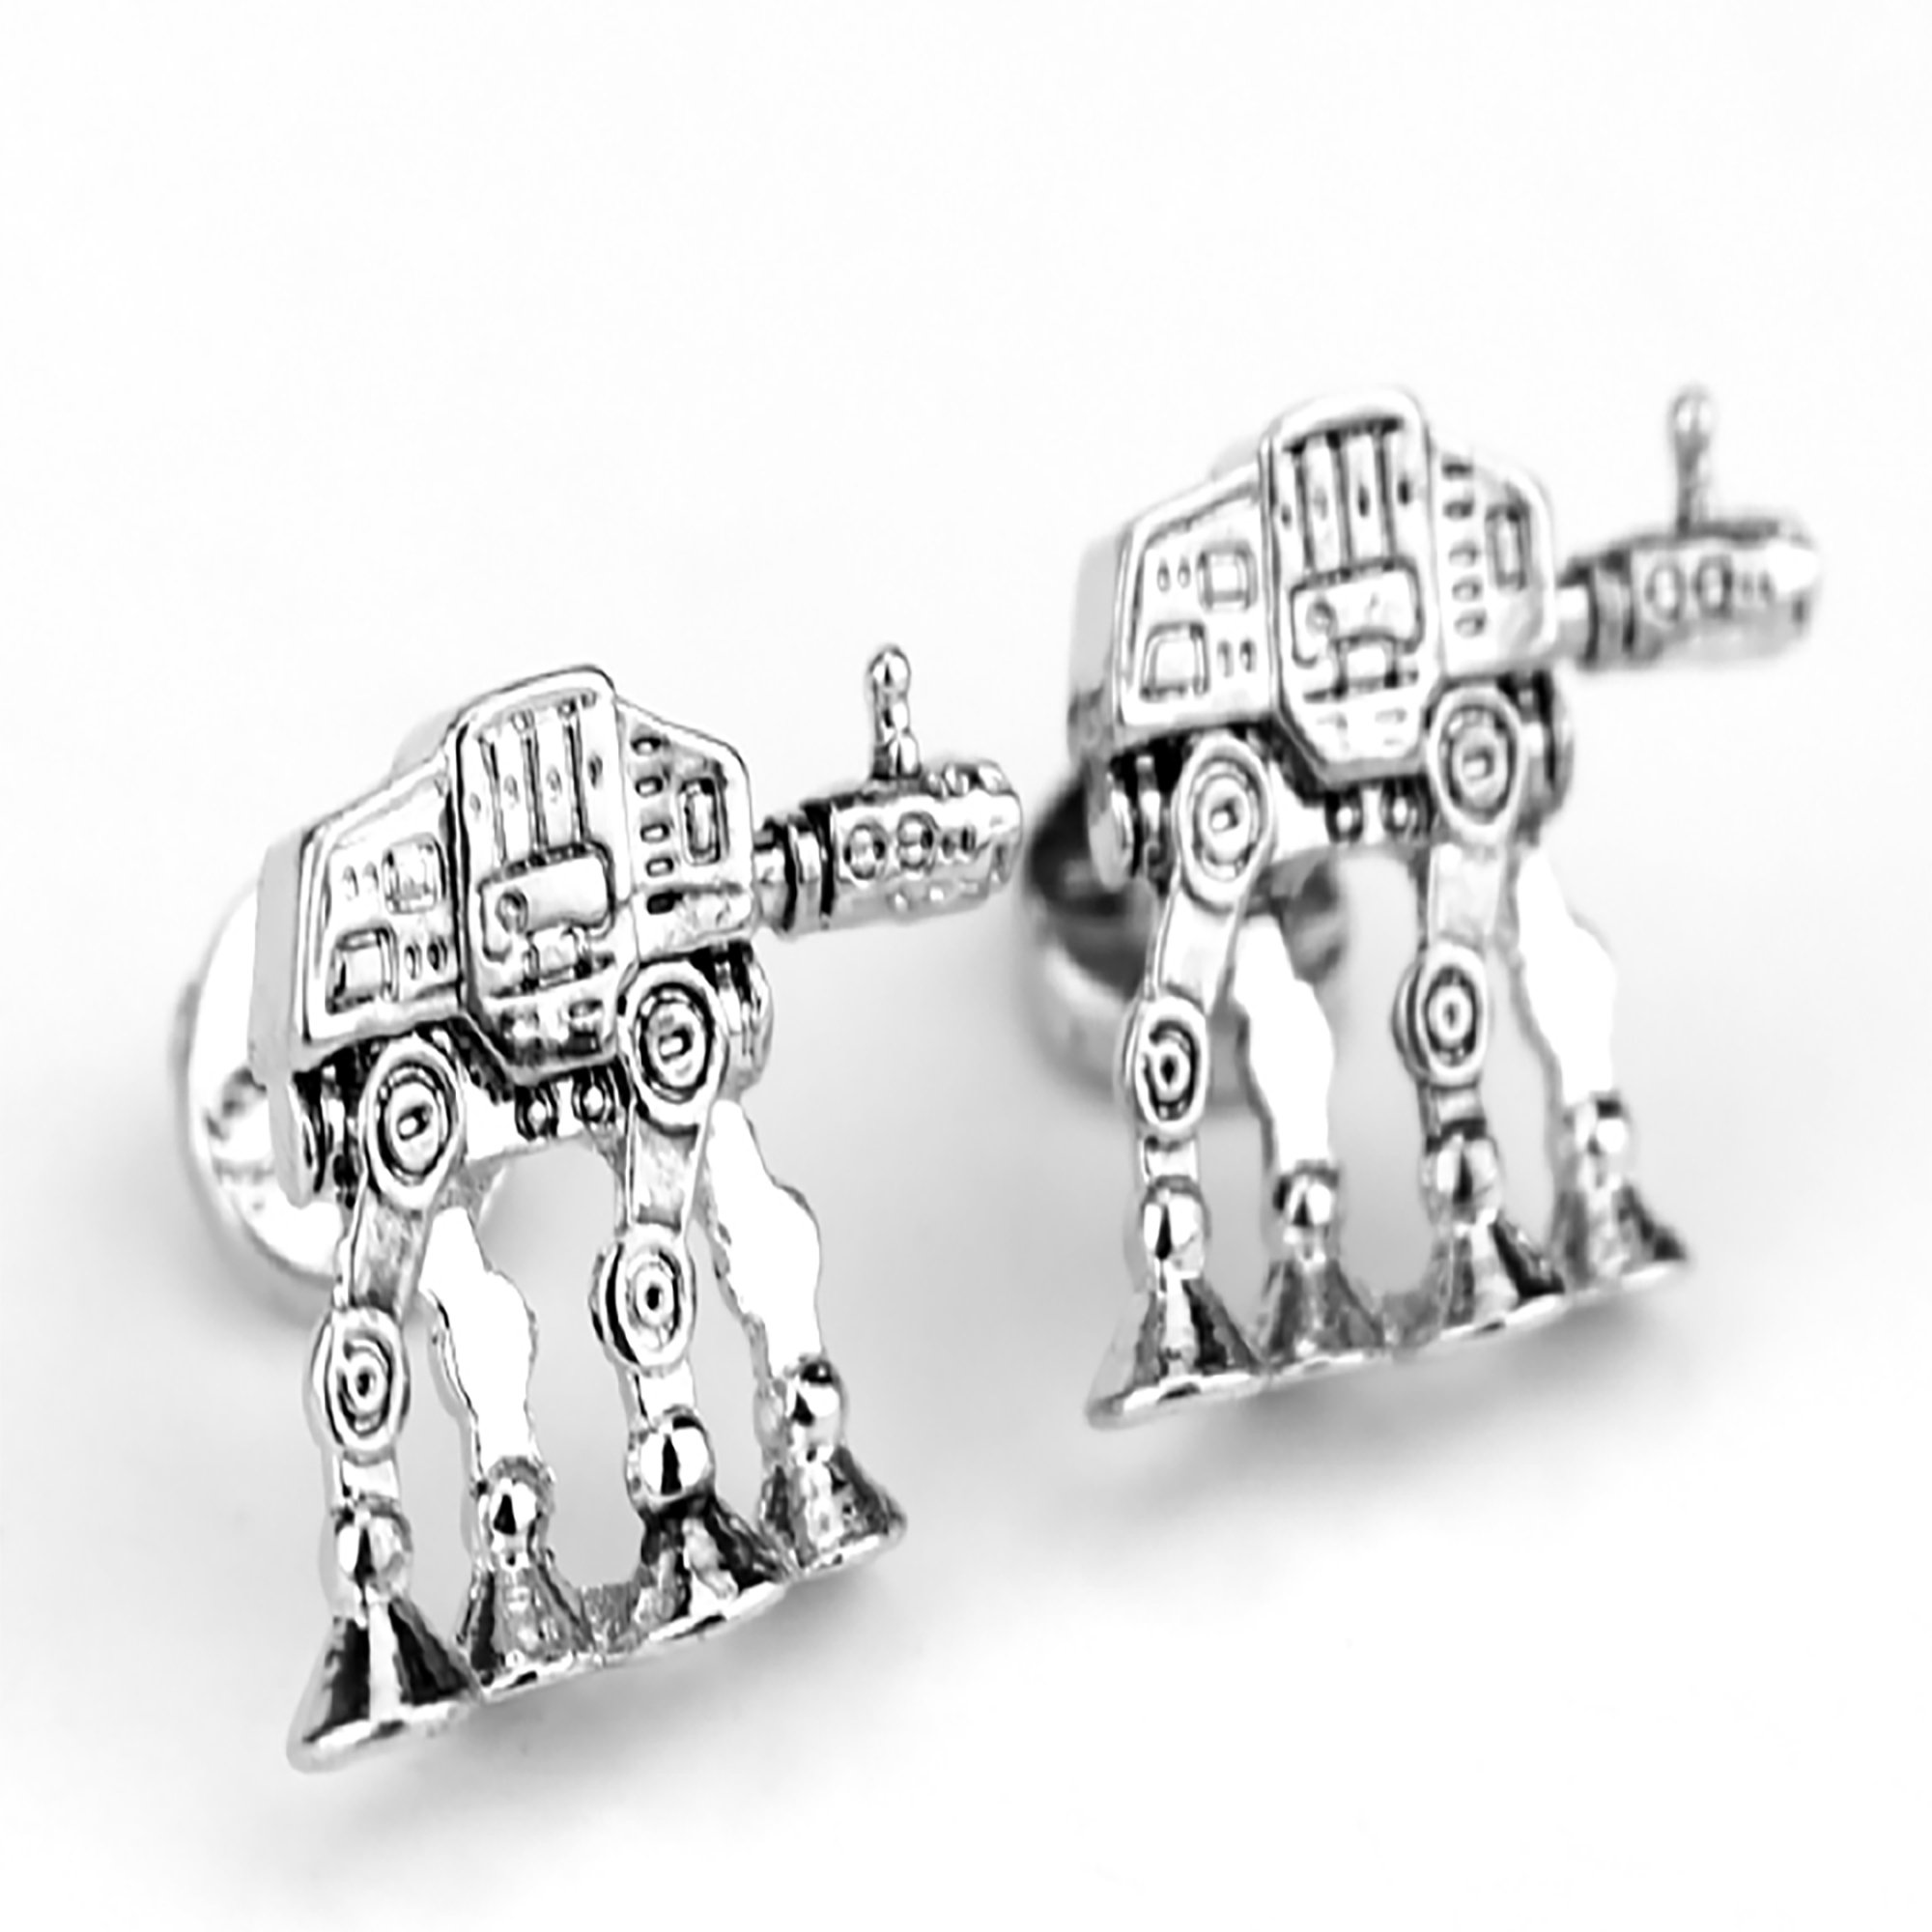 Hand Poured and Cast Star Wars Themed Cufflinks (AT-AT Walker 3D)